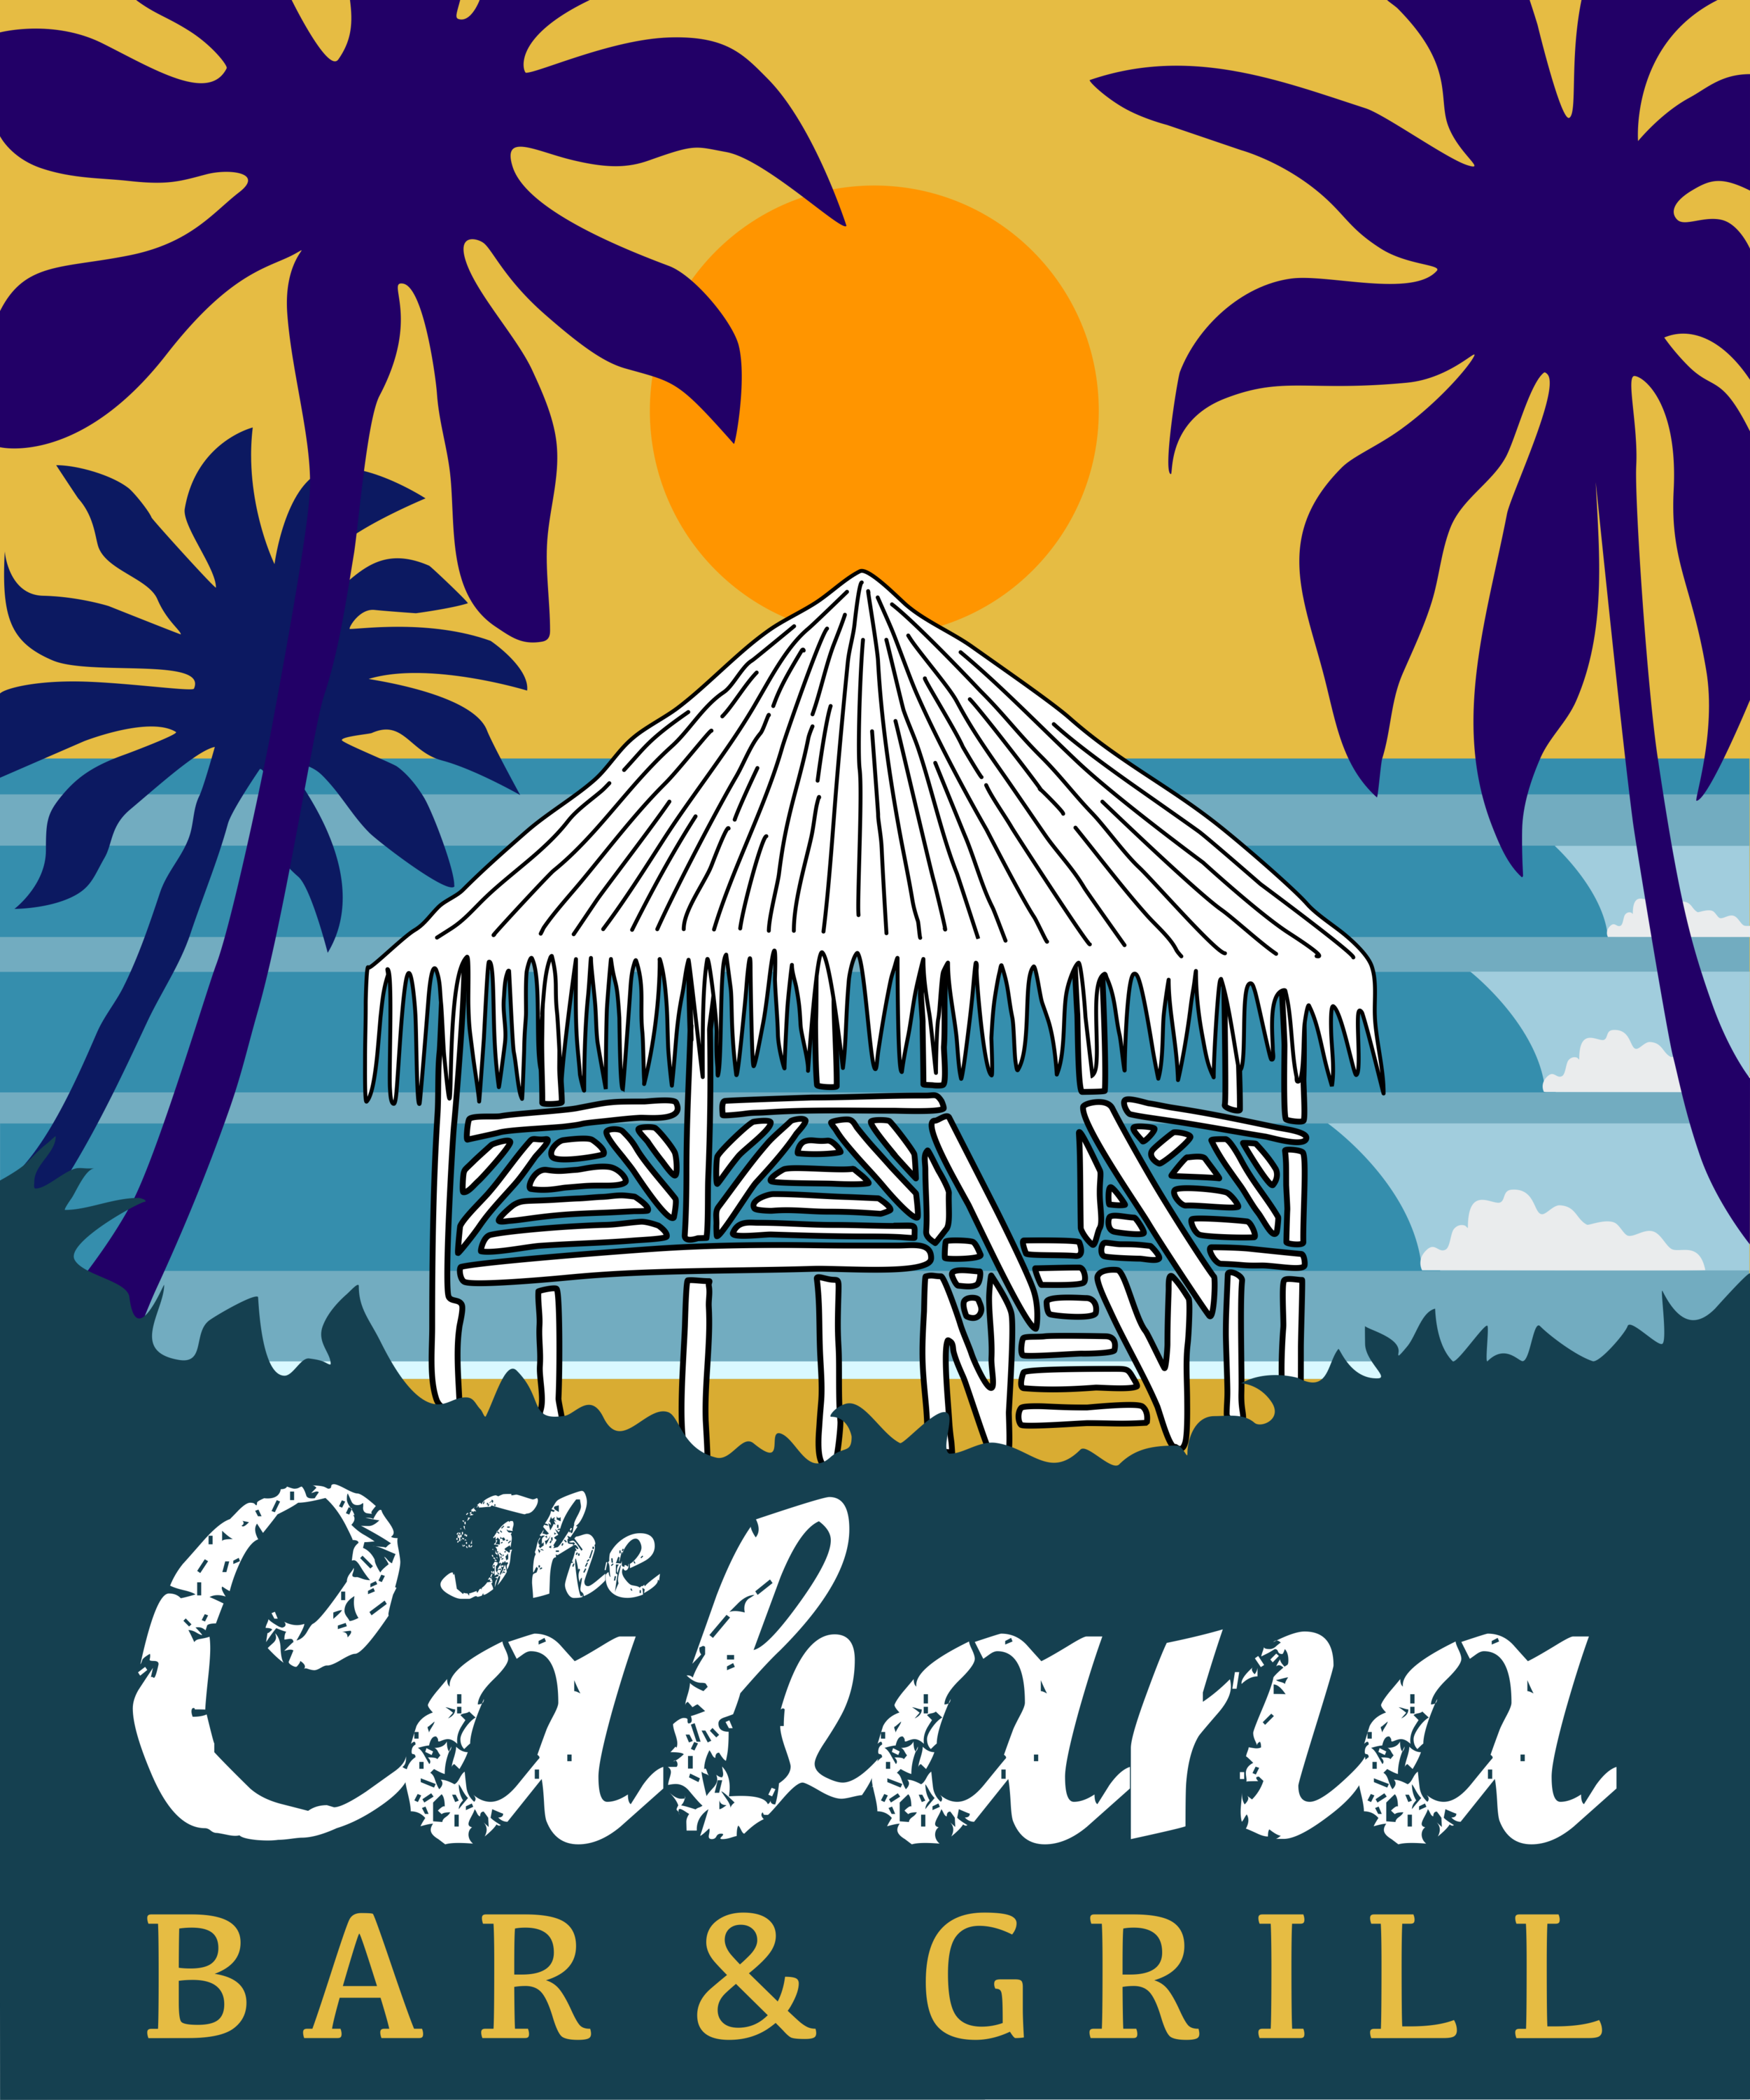 The Cabana Bar and Grill